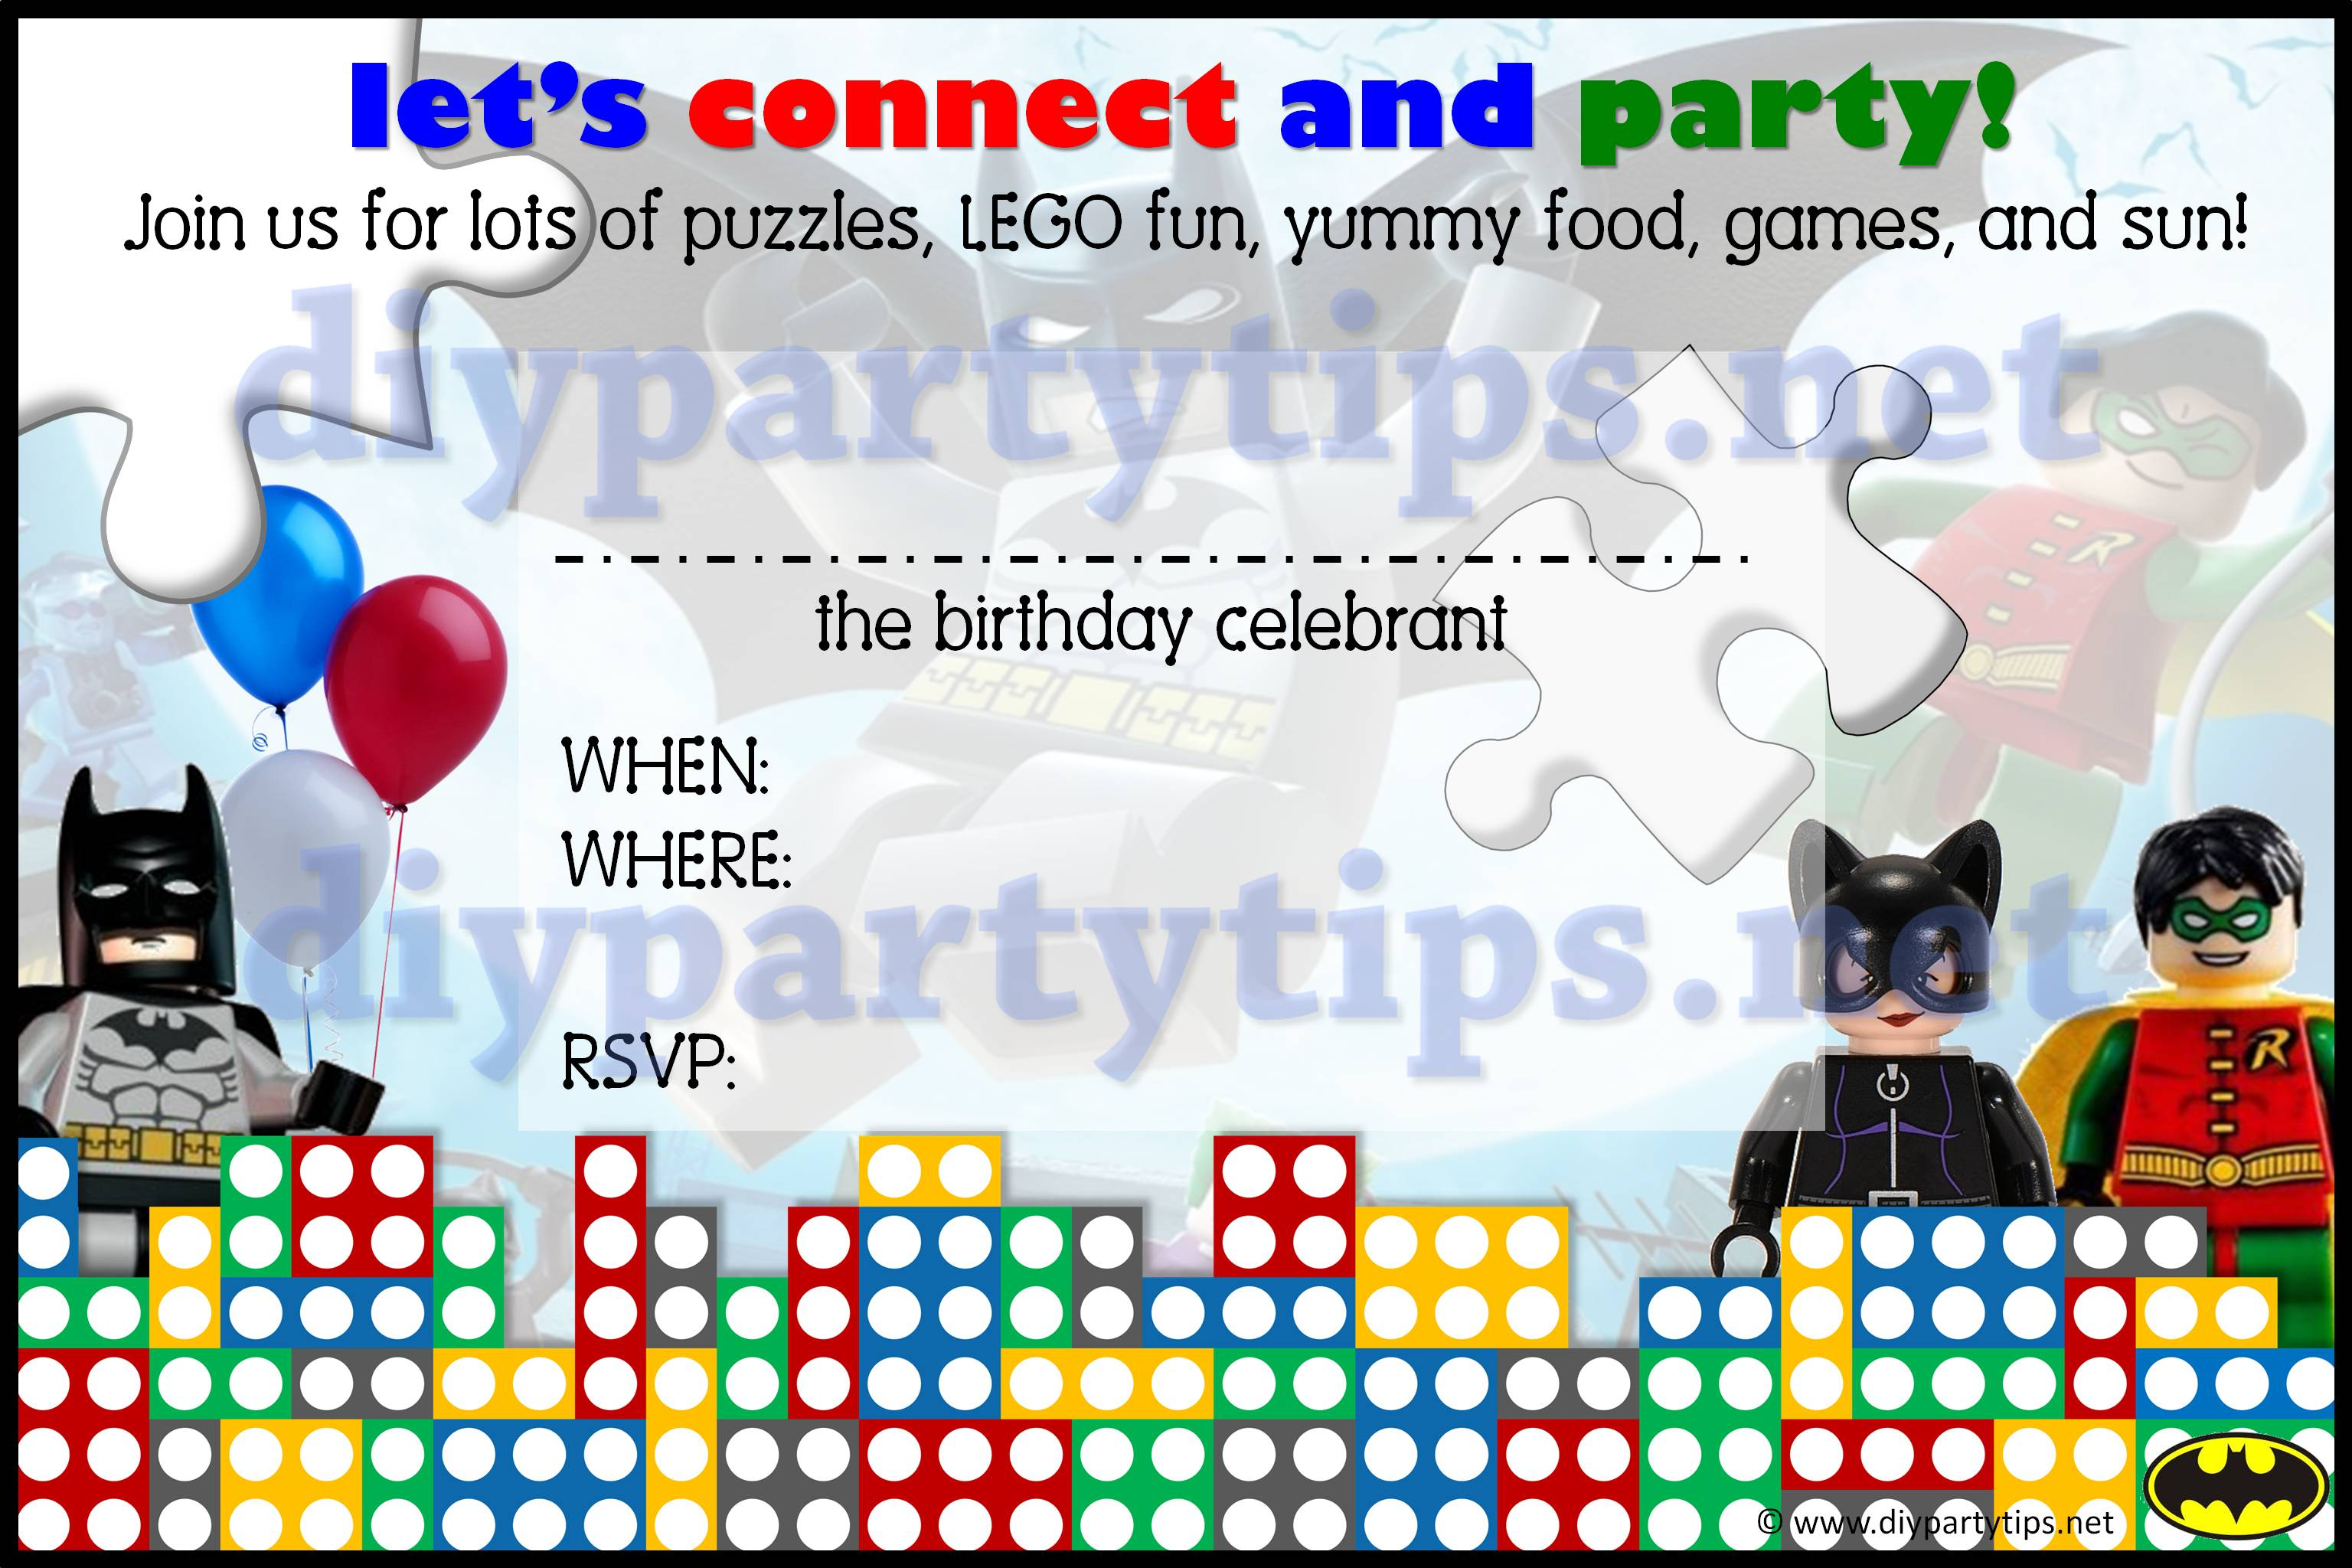 free printable: lego party invitation – lola's diy party tips, Party invitations